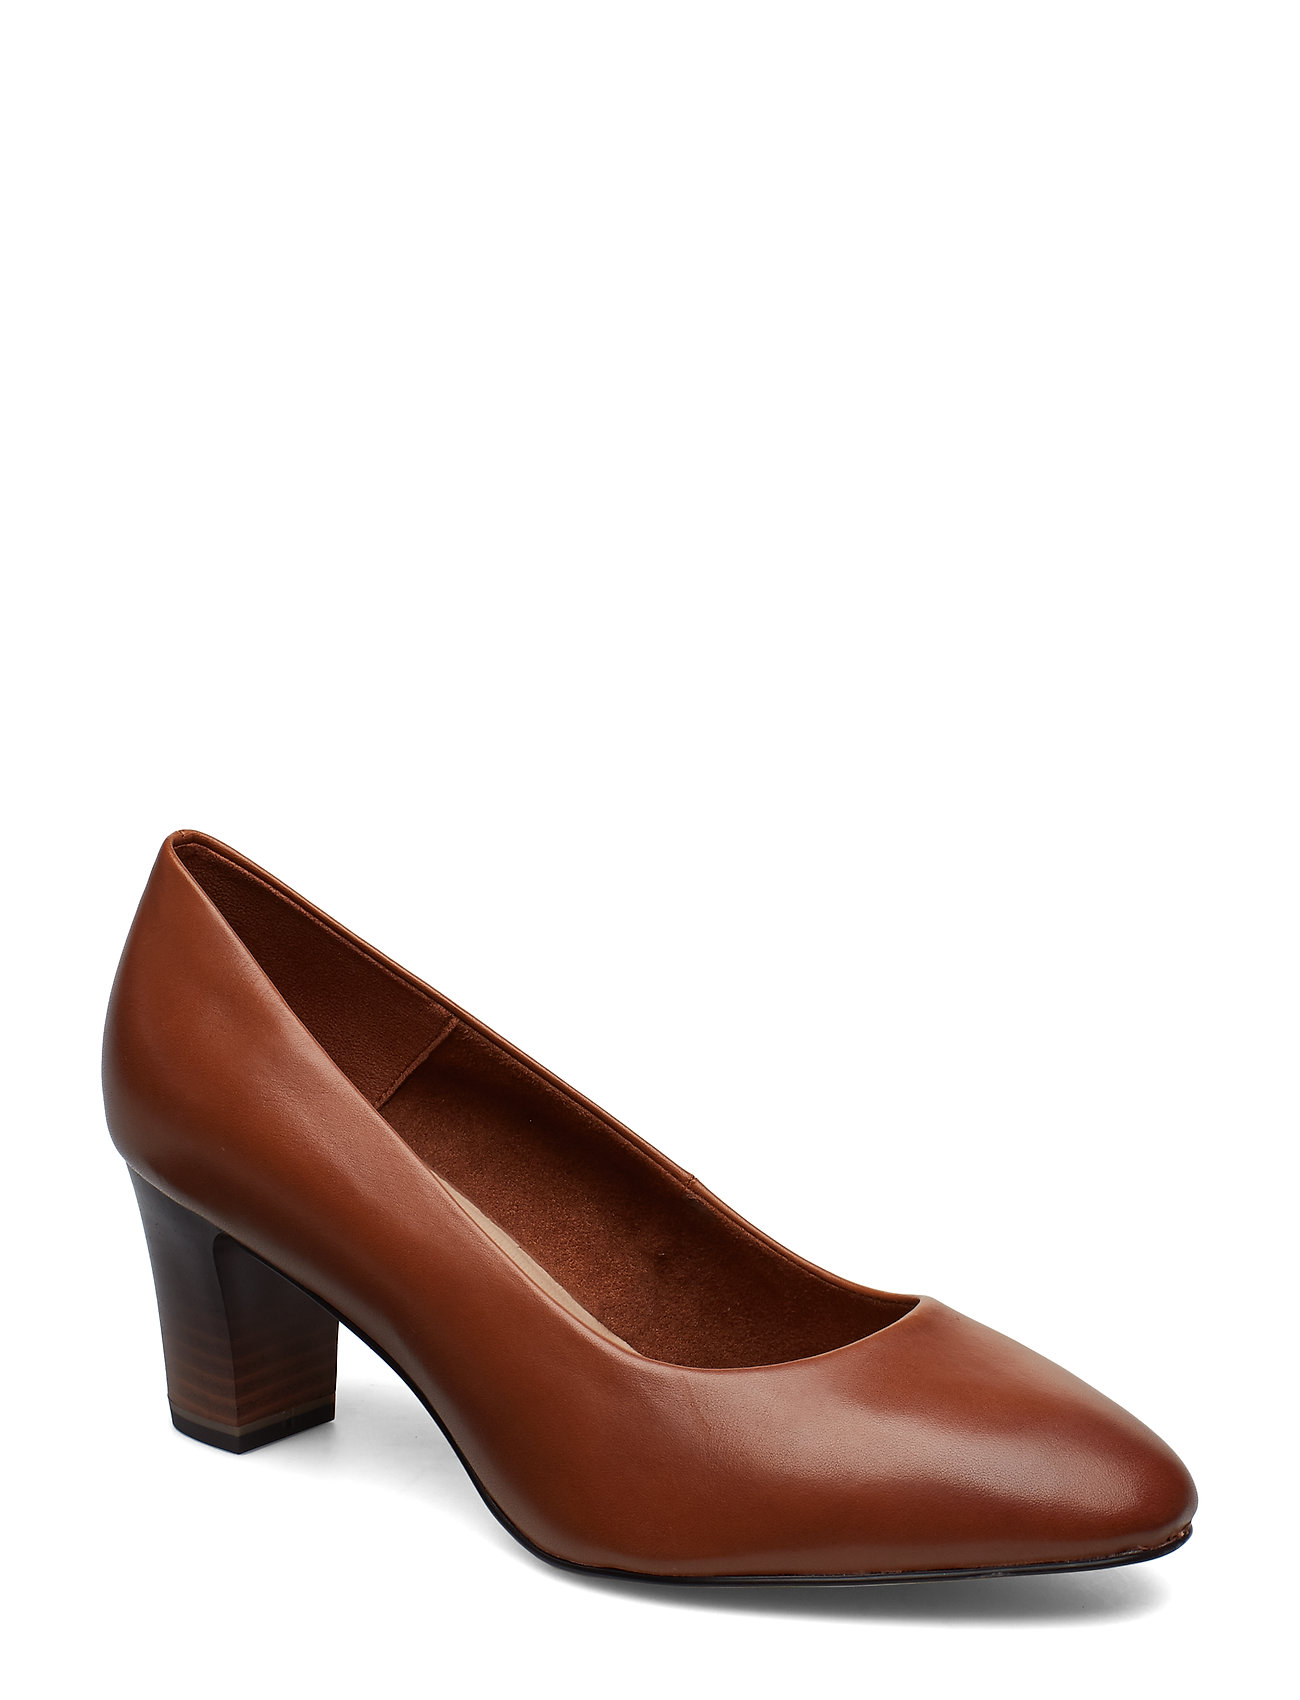 Tamaris Woms Court Shoe - COGNAC